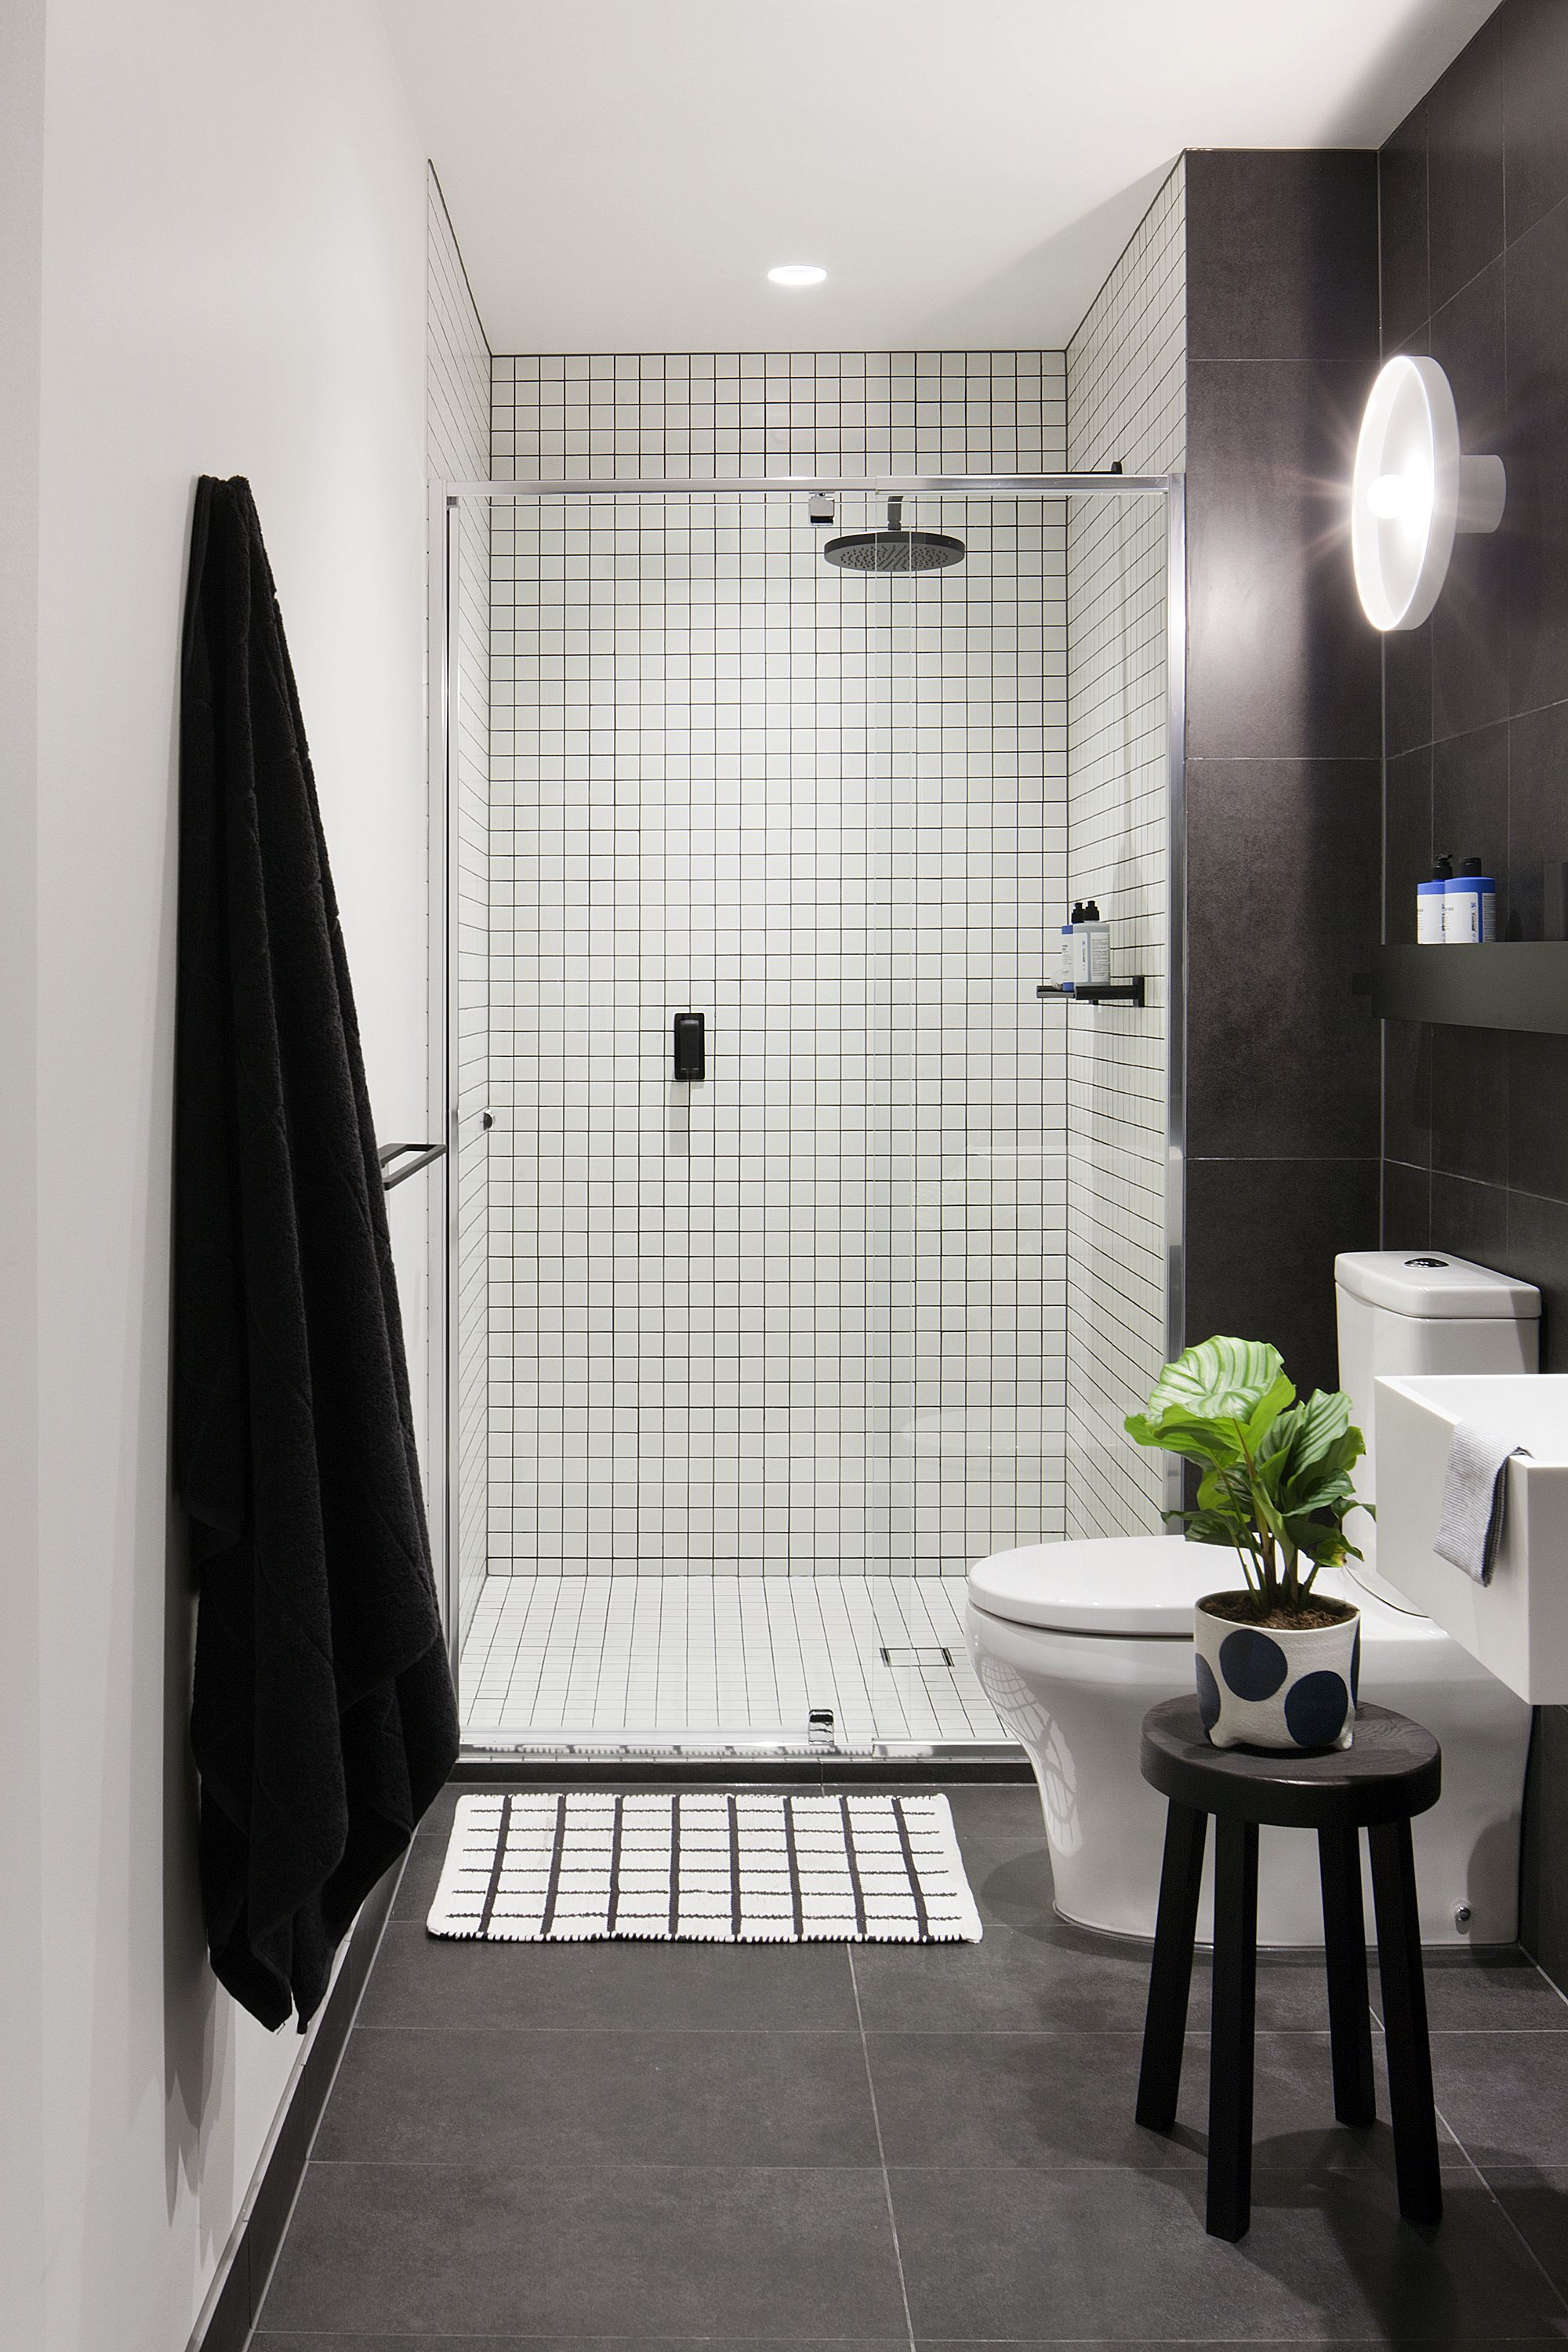 bathroom lighting melbourne. Hecker Guthrie Are Interior Designers And Furniture Located In Melbourne Australia Specializing Residential, Retail, Hotel Accommodation Bathroom Lighting